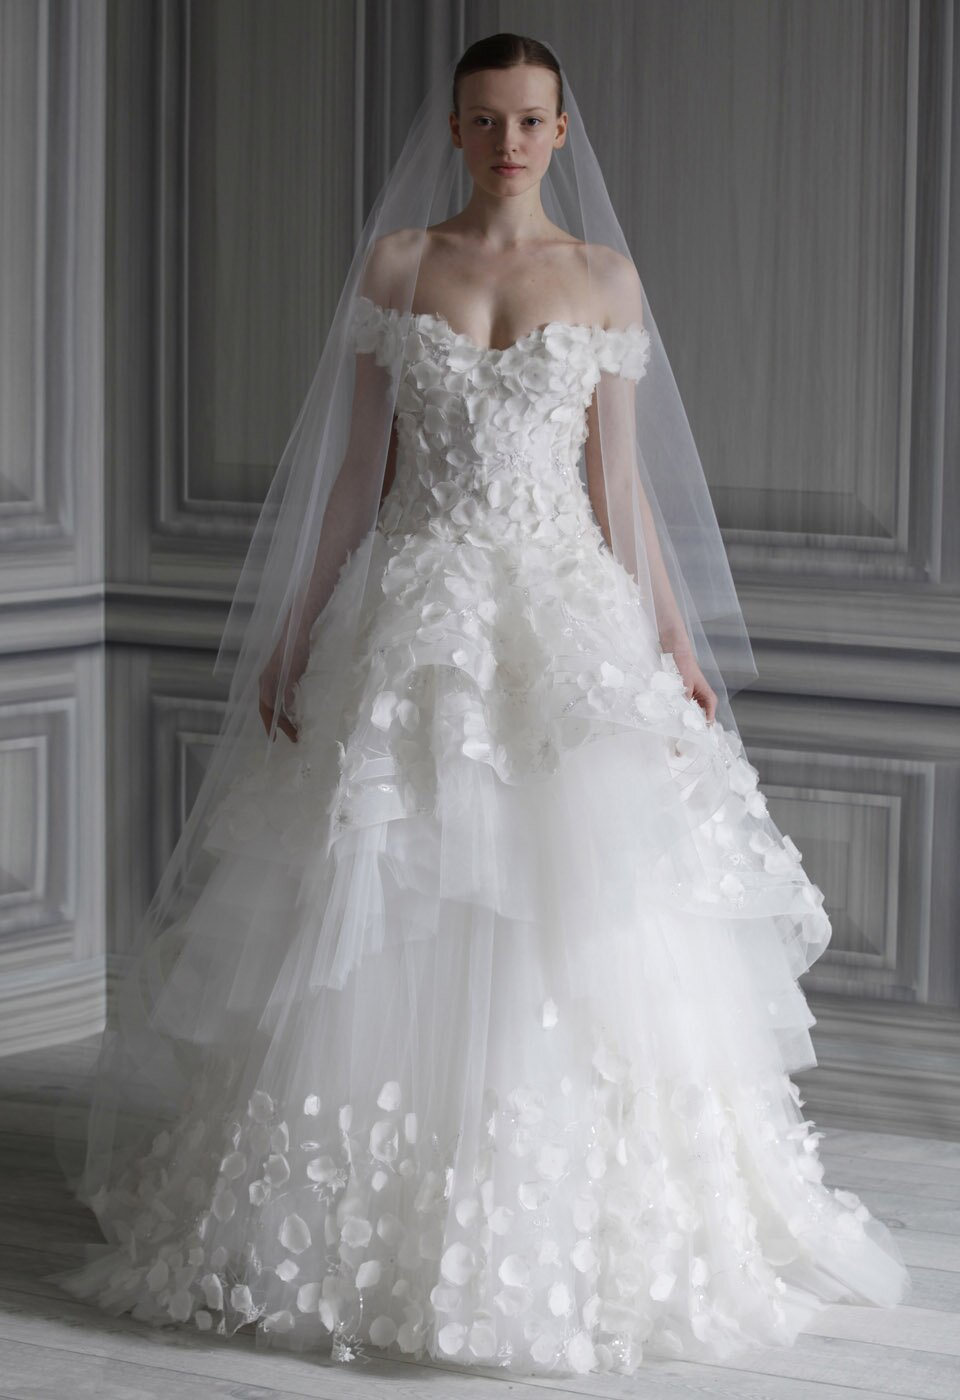 Winter wedding flower girl dresses: Pictures ideas, Guide to buying ...